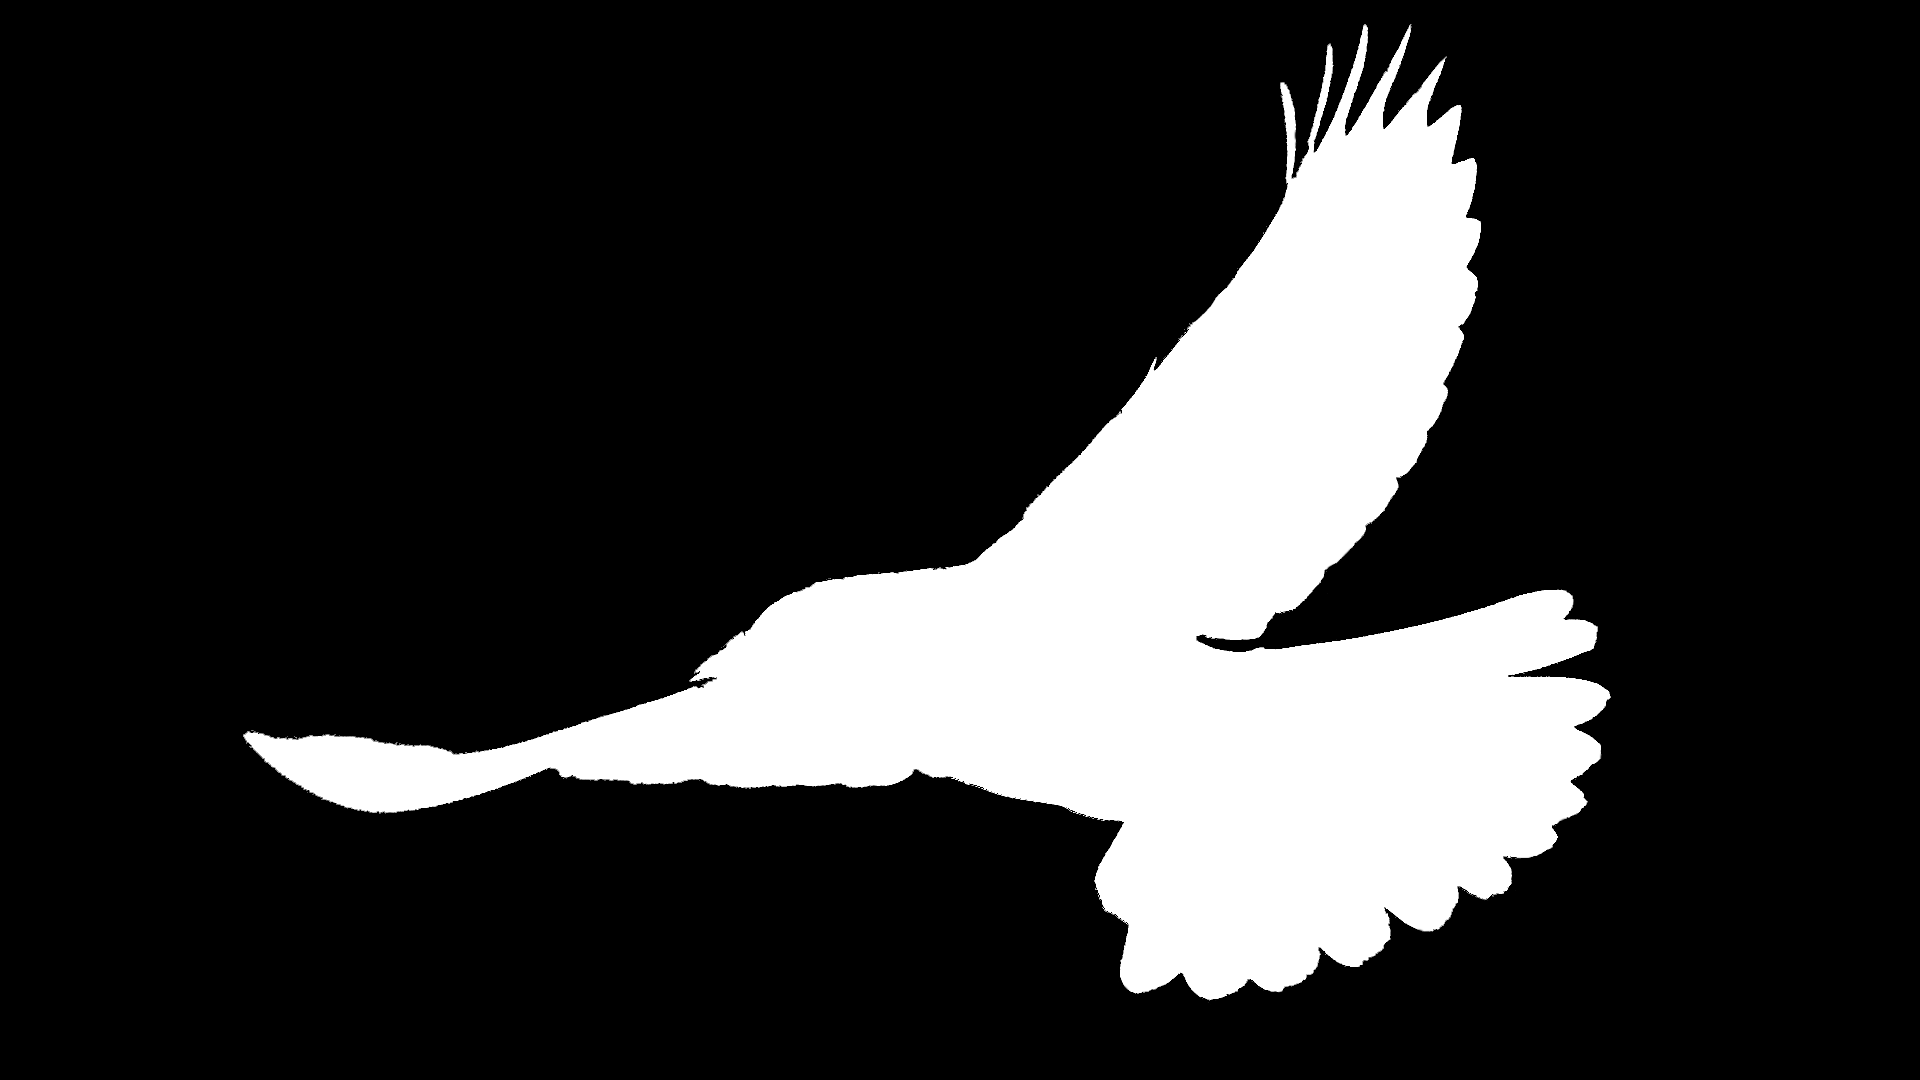 White Bird over Black Background.png